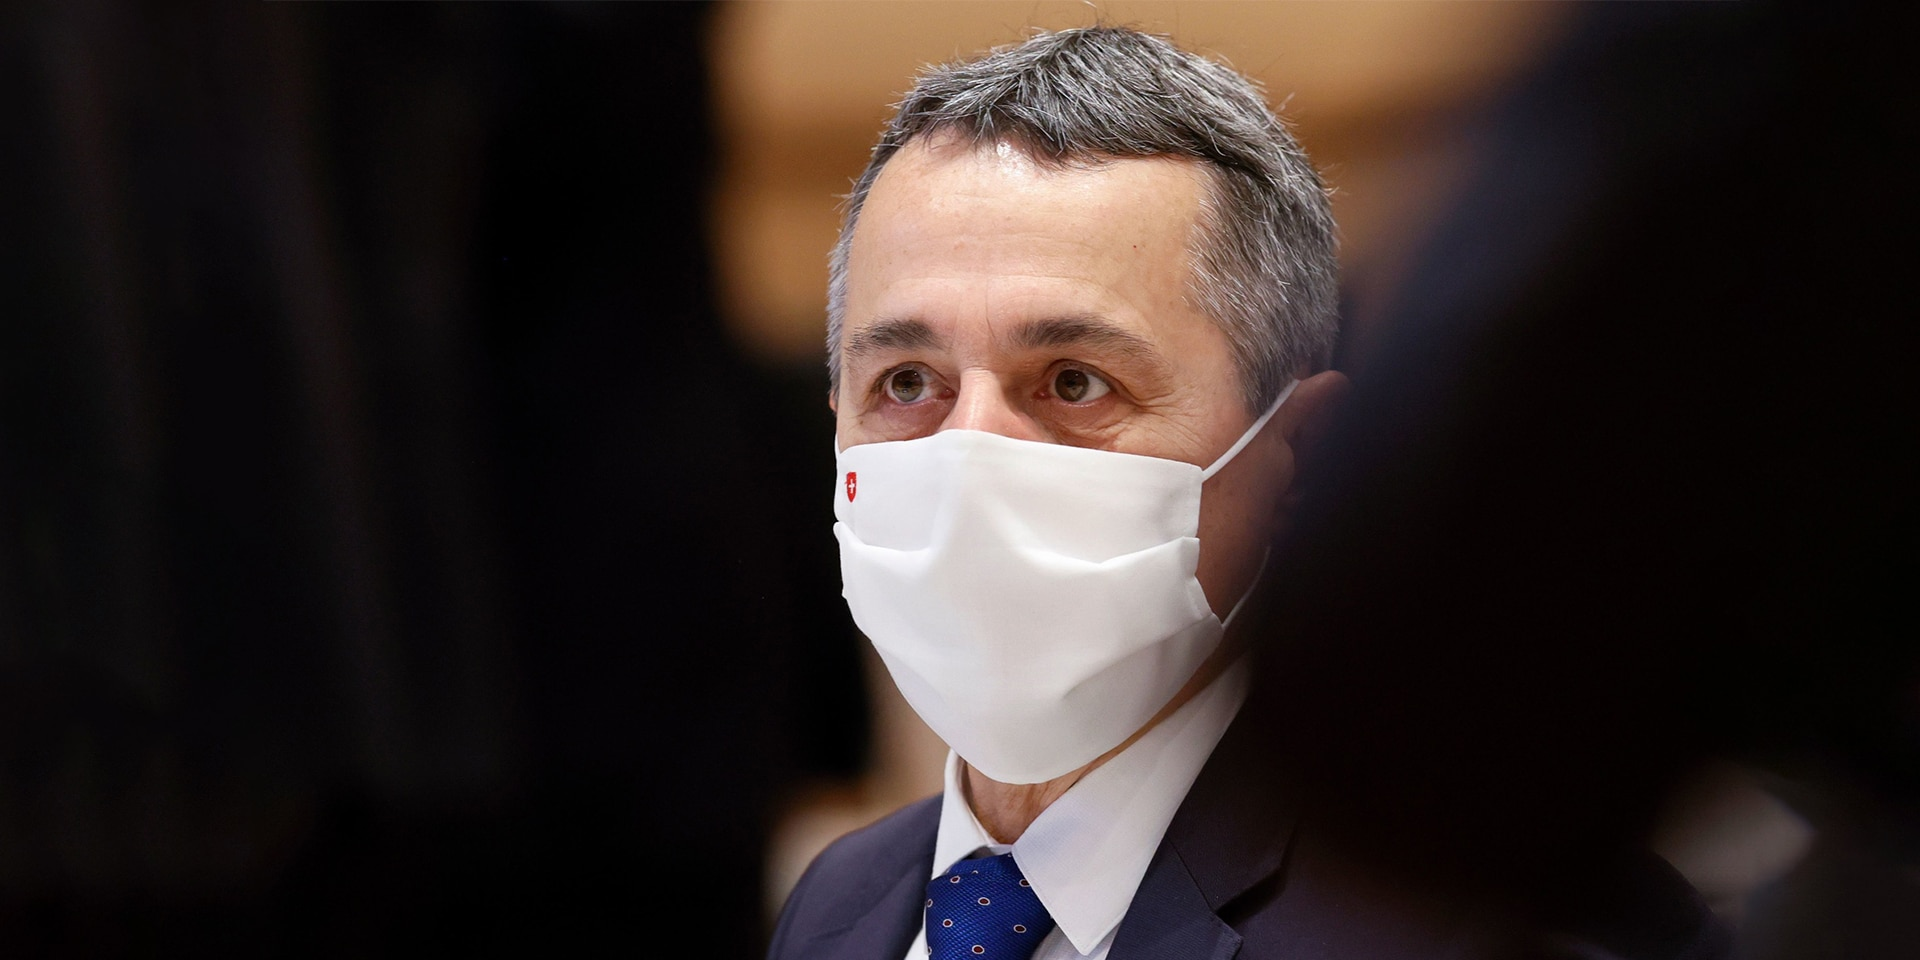 Close-up of Federal Councillor Ignazio Cassis sitting in the room at a UN assembly in November 2020 and wearing a face mask with a Swiss cross.